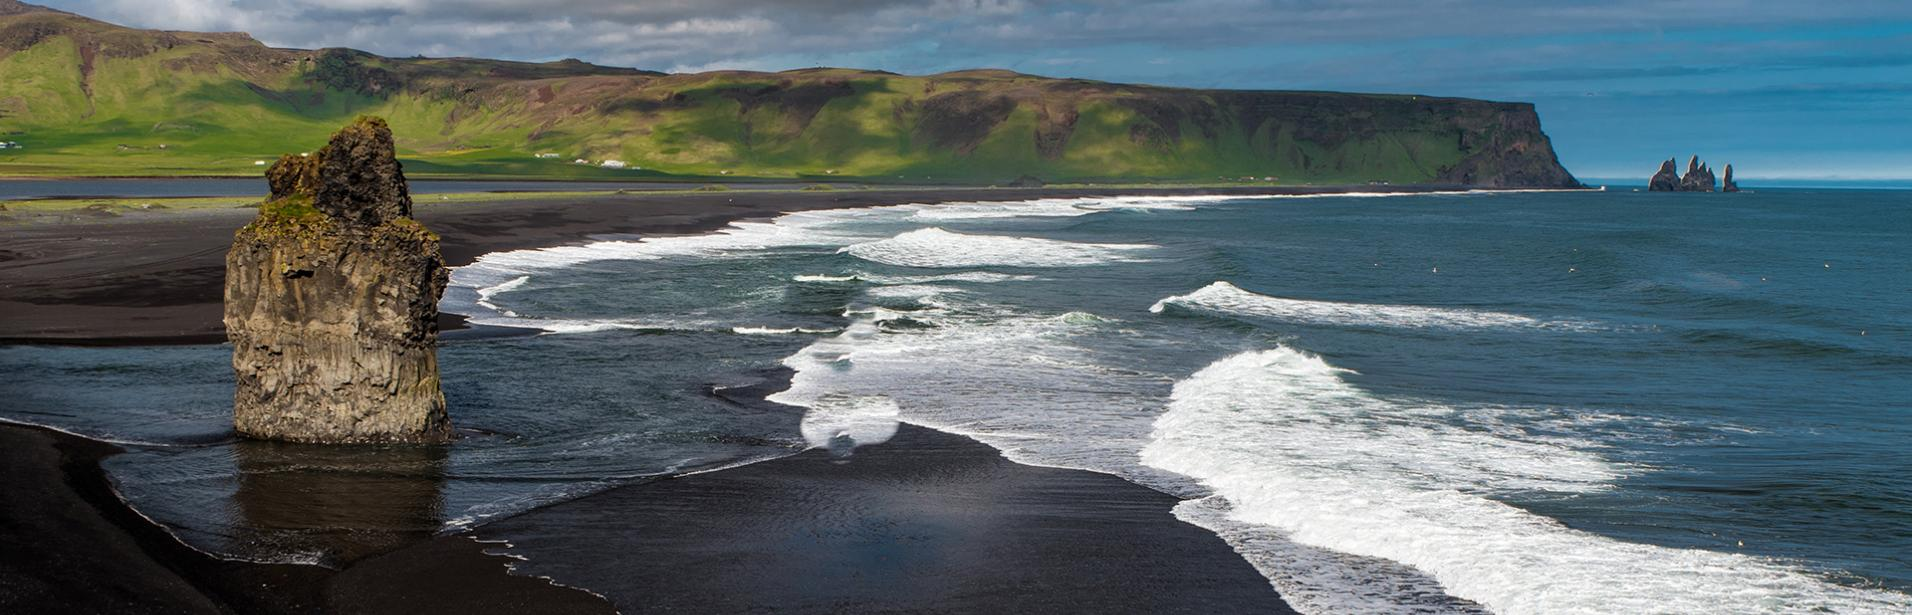 south coast, iceland, reynisfara beach